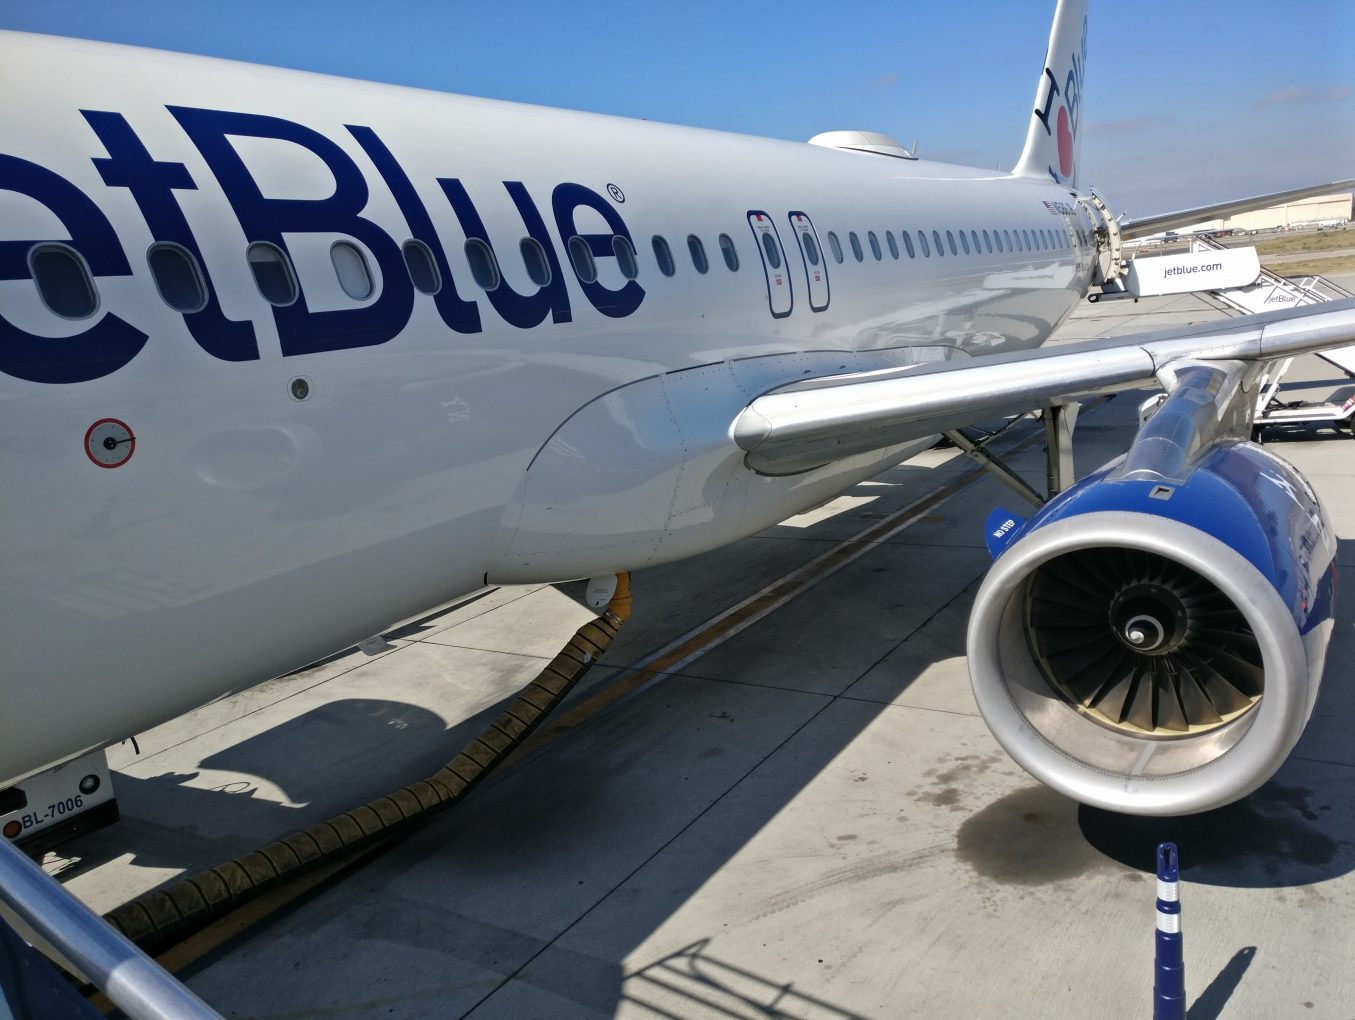 JetBlue Mileage Run - How It All Shook Out